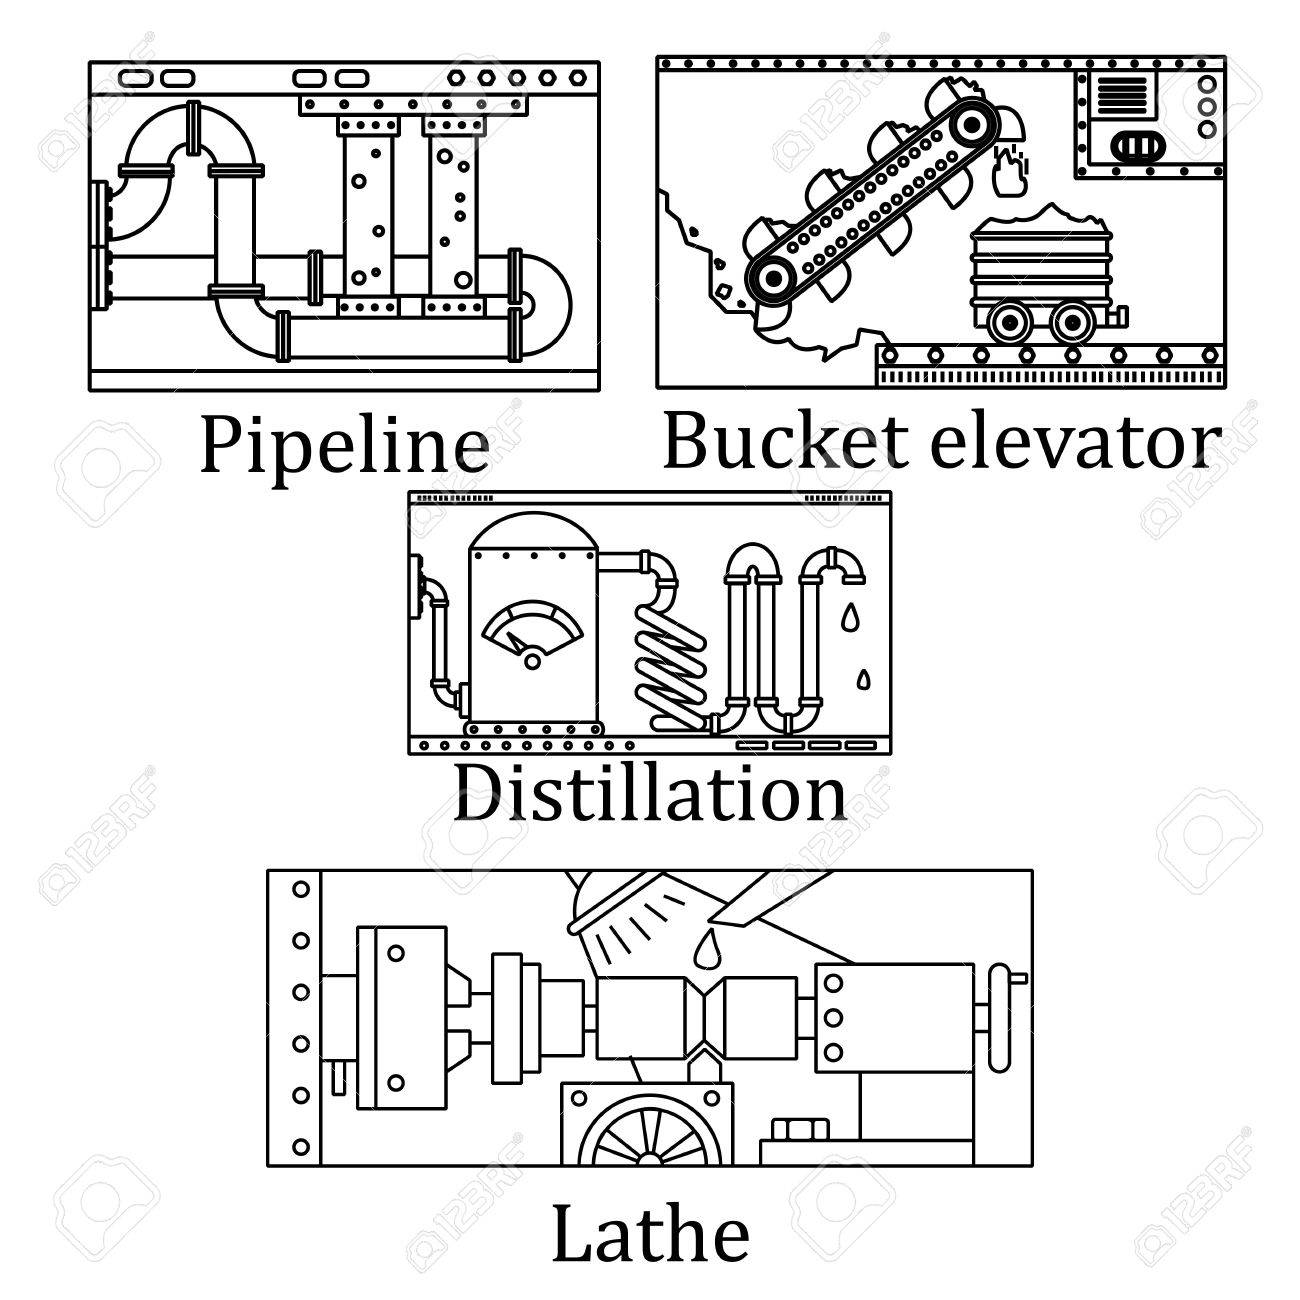 Bucket Elevator Drawing at GetDrawings com | Free for